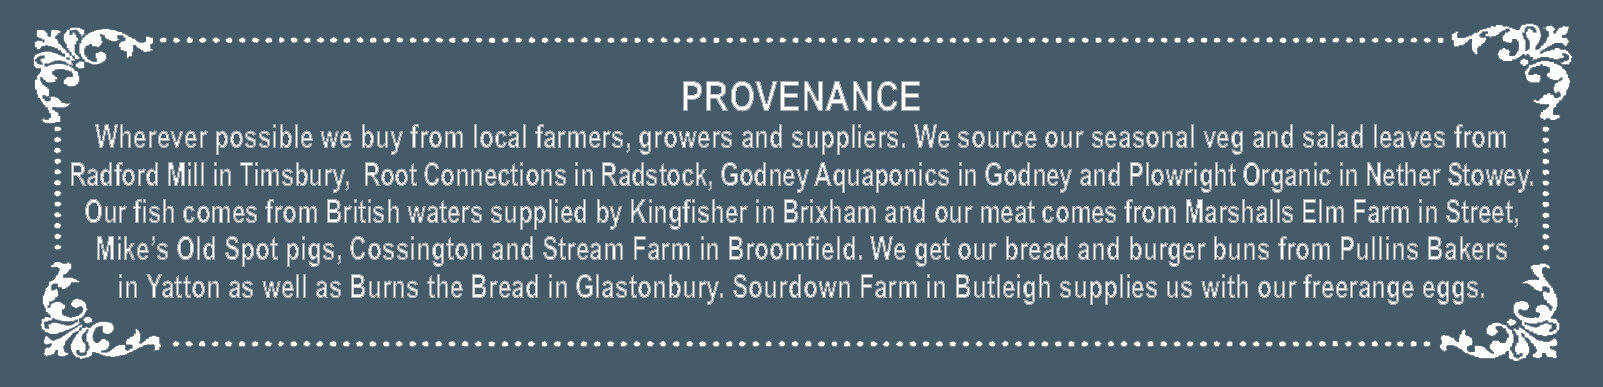 PROVENANCE  Wherever possible we buy from local farmers, growers and suppliers.  We source our seasonal veg and salad leaves from Radford Mill in Timsbury, Barrington Farm in Illminster  and Plowright Organic in Nether Stowey. Our fish comes from British waters supplied by Kingfisher in Brixham  and our meat comes from Marshalls Elm Farm in Street, Mike's Old Spot pigs, Cossington and P & K Meats, Street.  We get our bread and burger buns from Pullins Bakers in Yatton and Burns the Bread in Glastonbury.  Blackacre Farm in Yeovil supplies us with our freerange eggs.